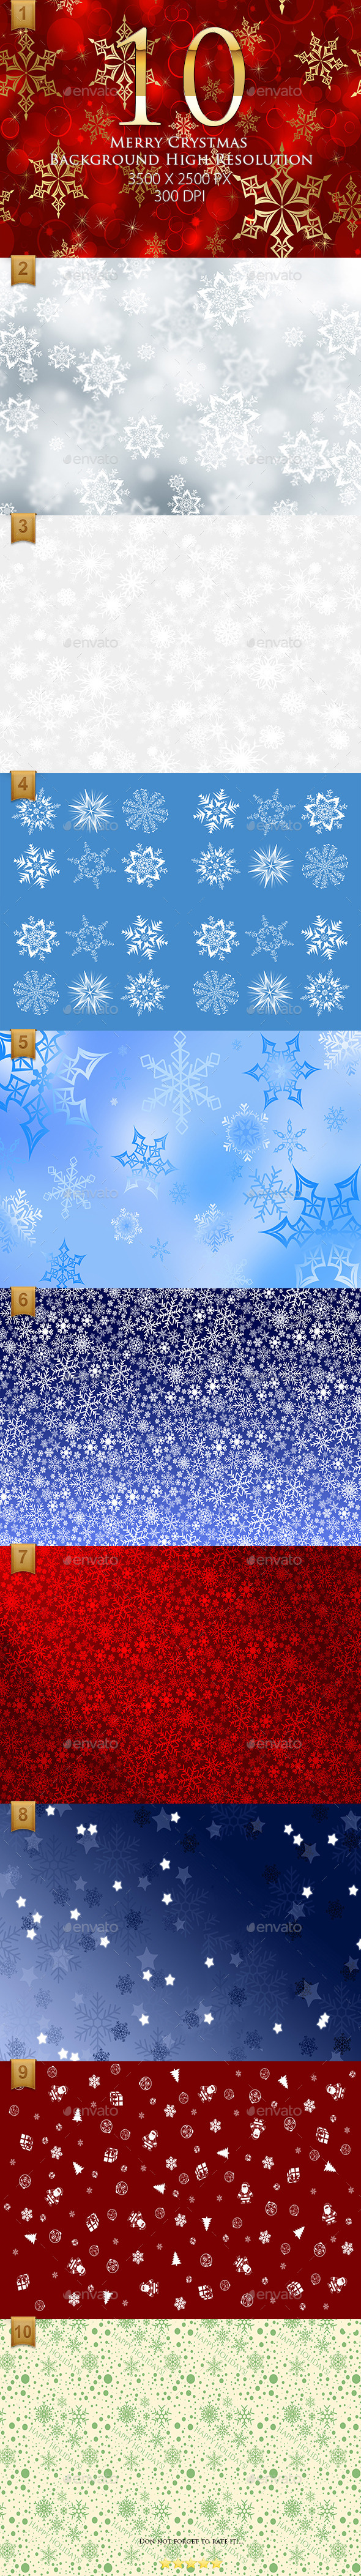 10 Merry Crystmas Background High Resolution Part1